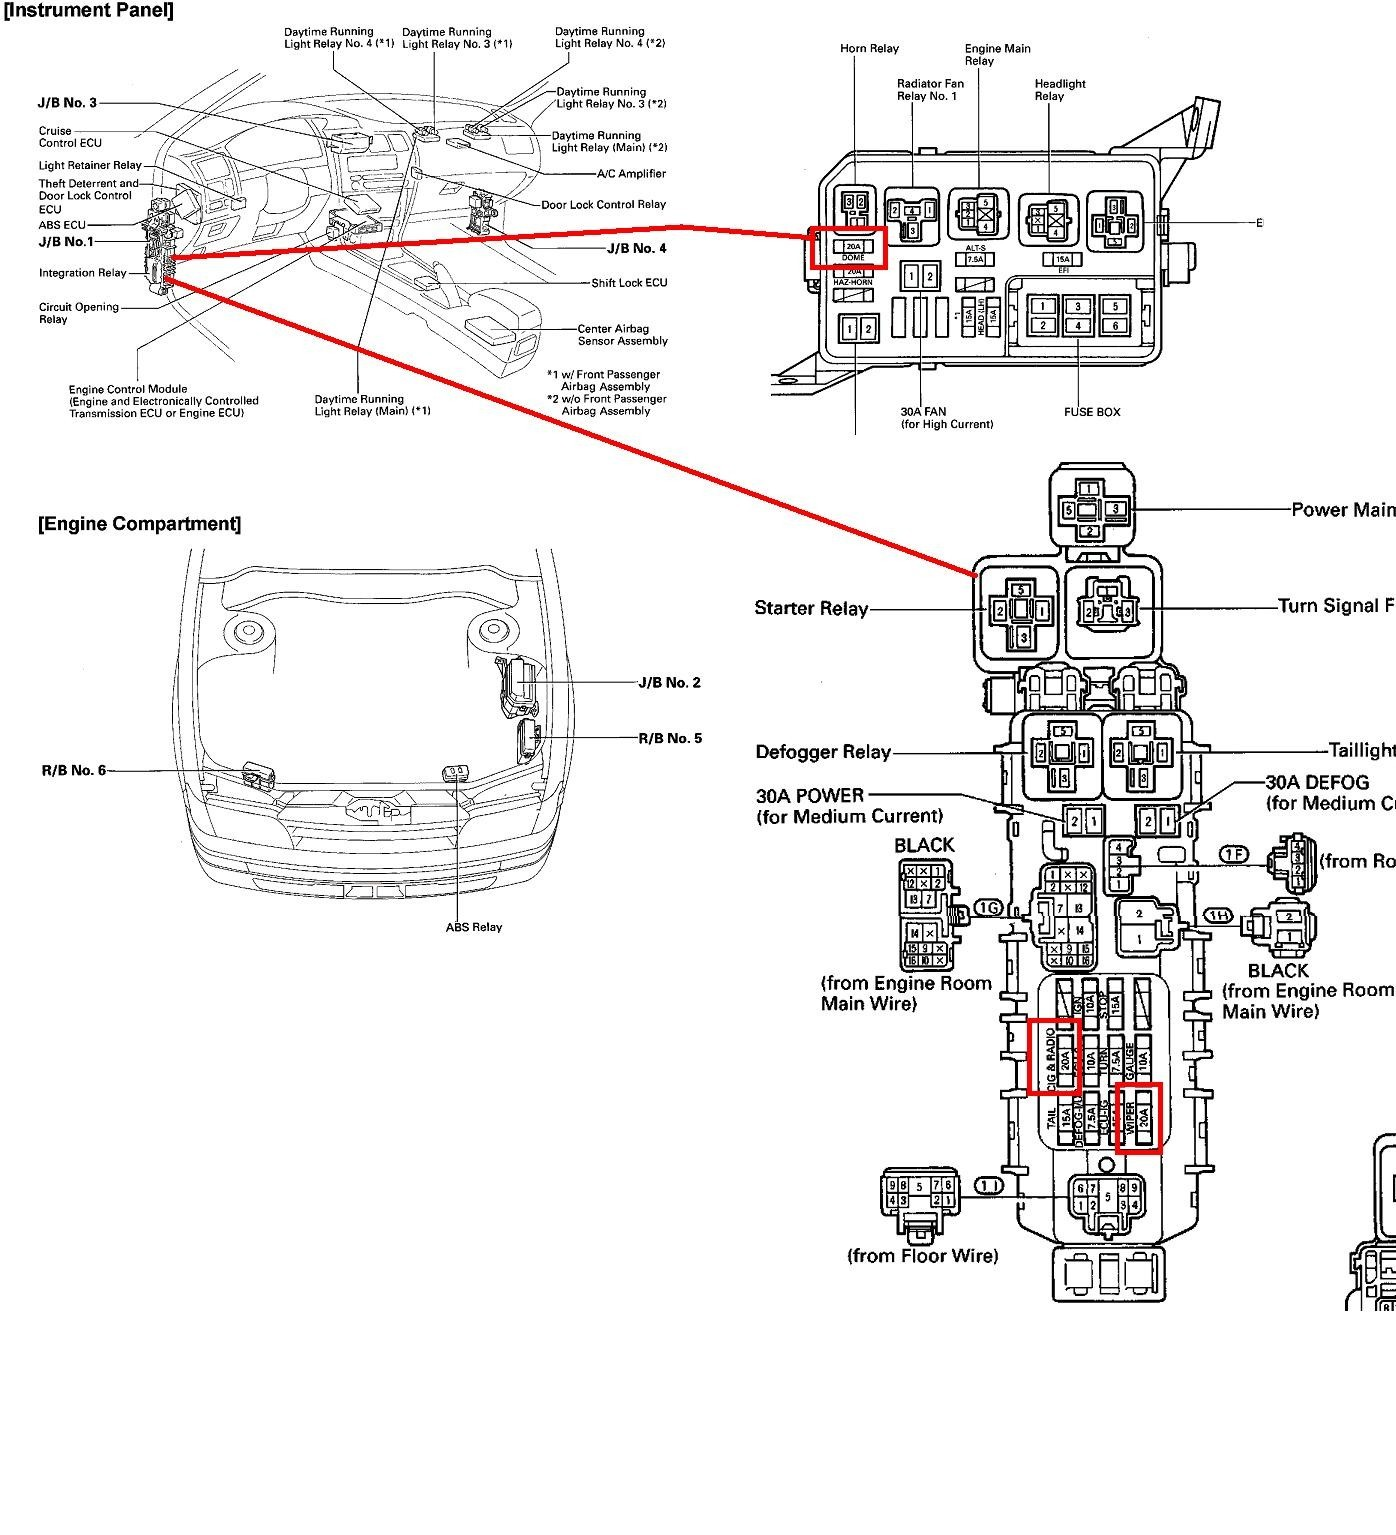 Wiring Diagram Of Toyota Corolla : Toyota corolla horn wiring diagram for free